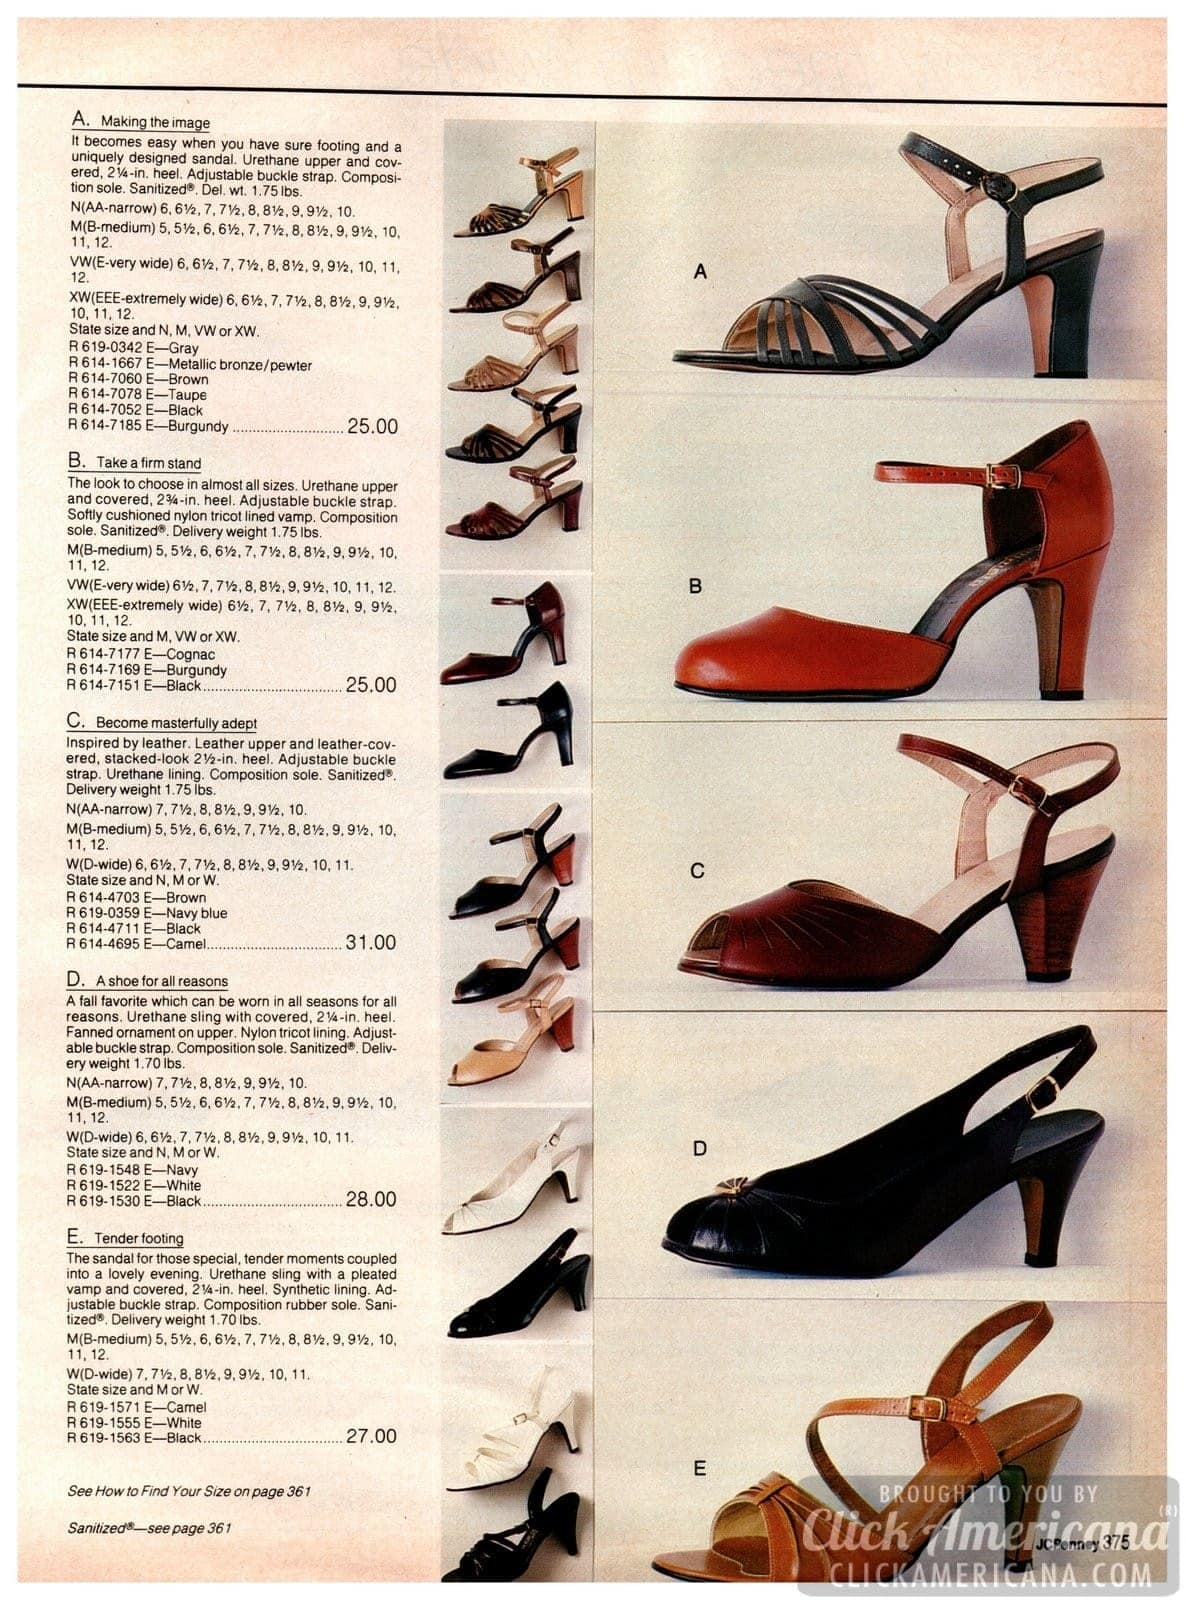 Strappy and sassy vintage high-heels for her from the '80s - sandals, pumps with buckle straps and other styles for ladies